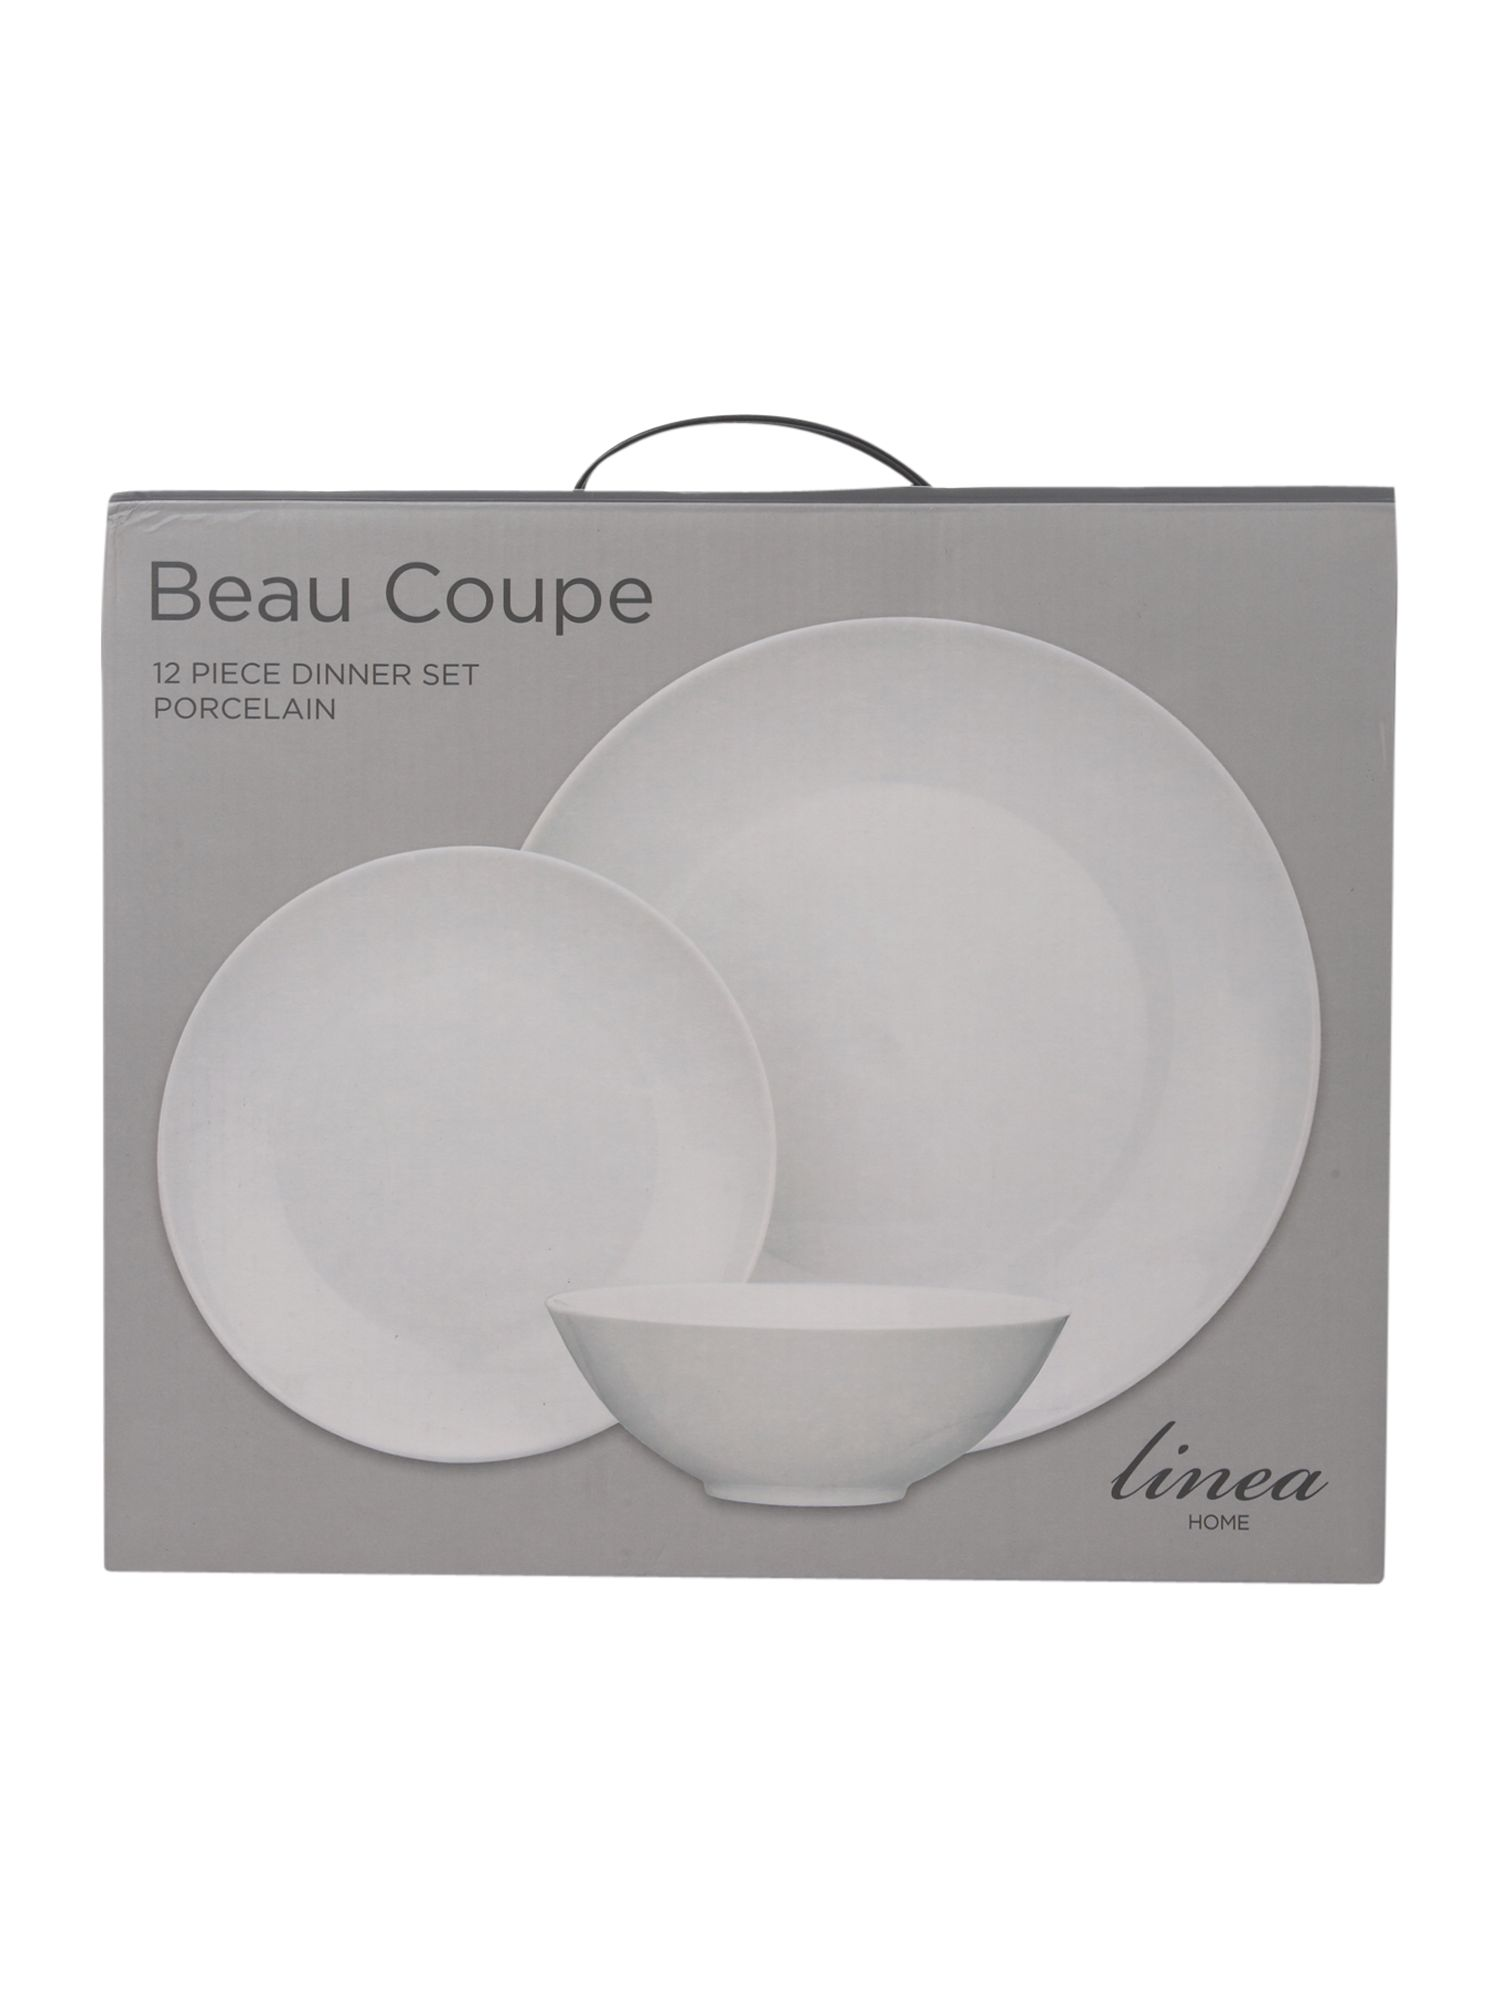 Beau coupe 12 piece set